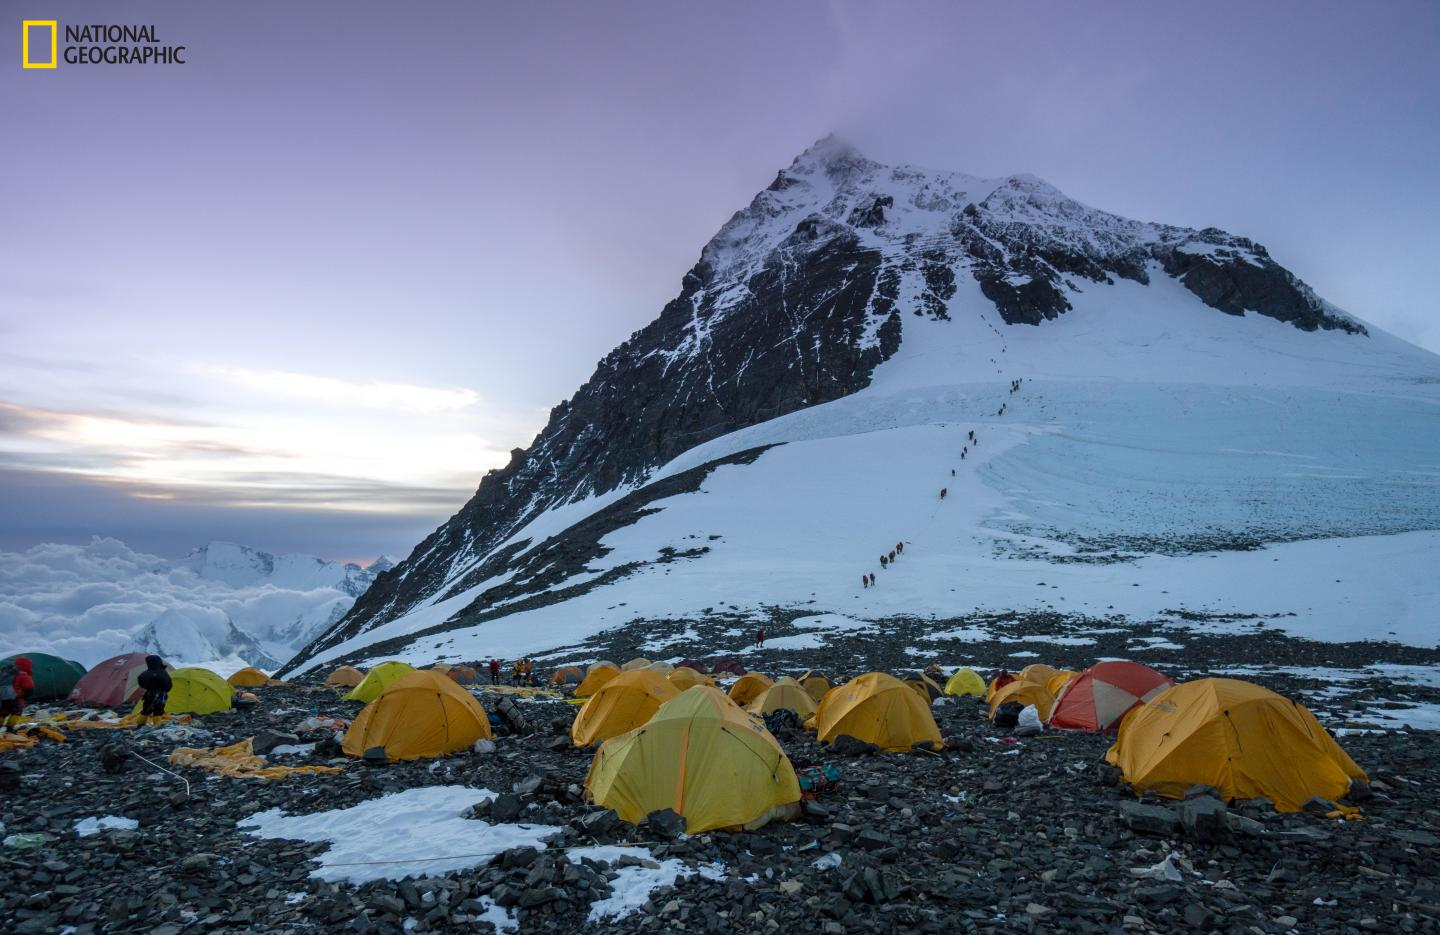 Tents and outdoor gear